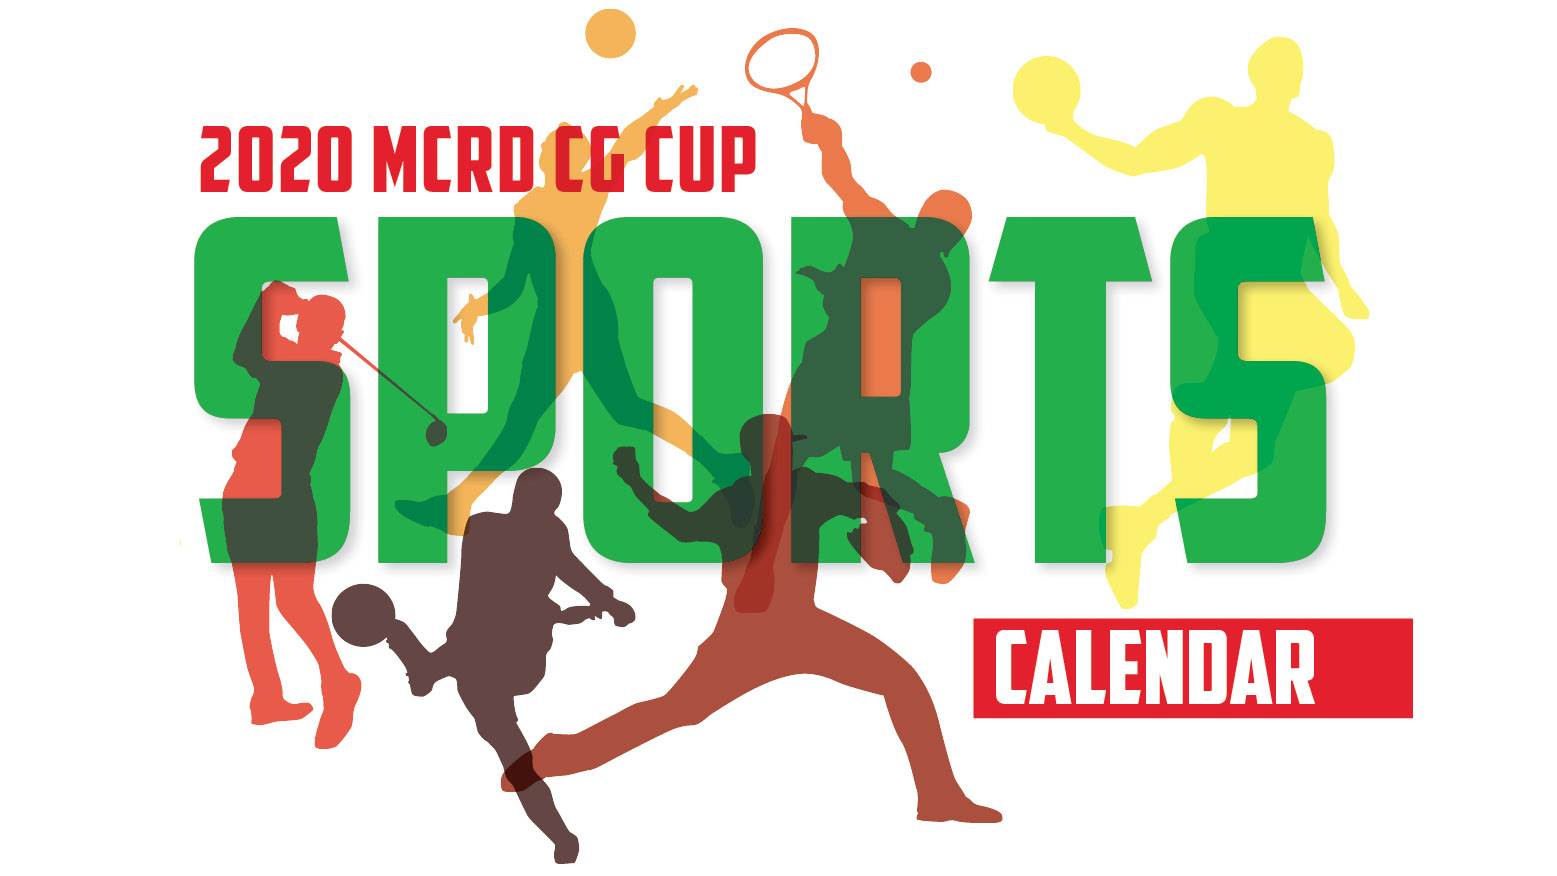 Image of the flyer - 2020 CG Cup Sports Calendar